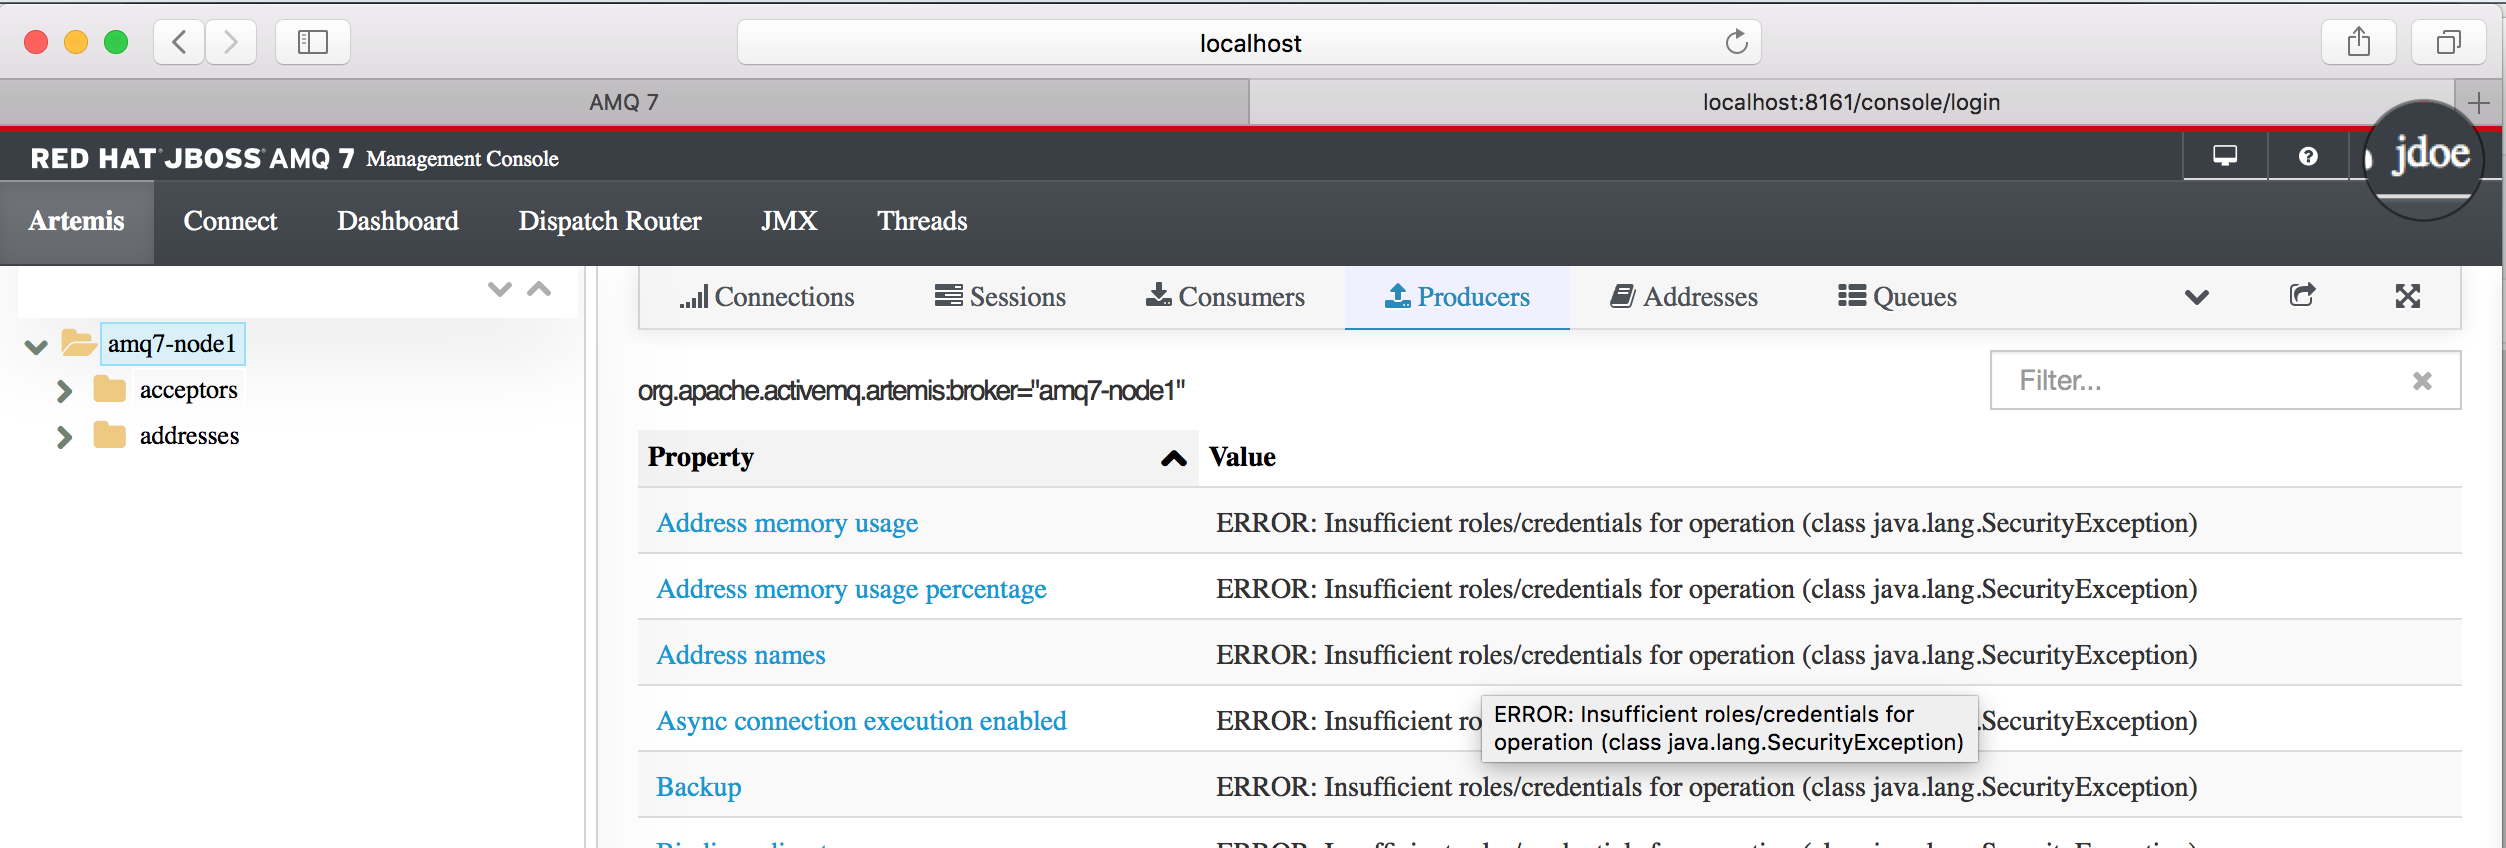 How to set up LDAP authentication for the Red Hat AMQ 7 message